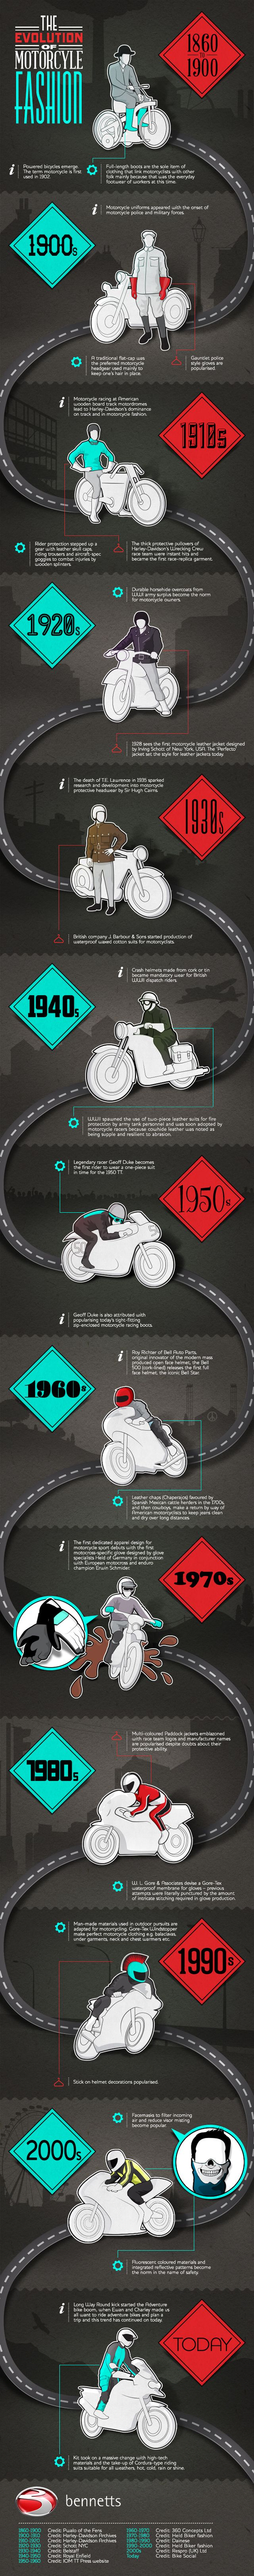 Infographic: The Evolution of #Motorcycle Gear